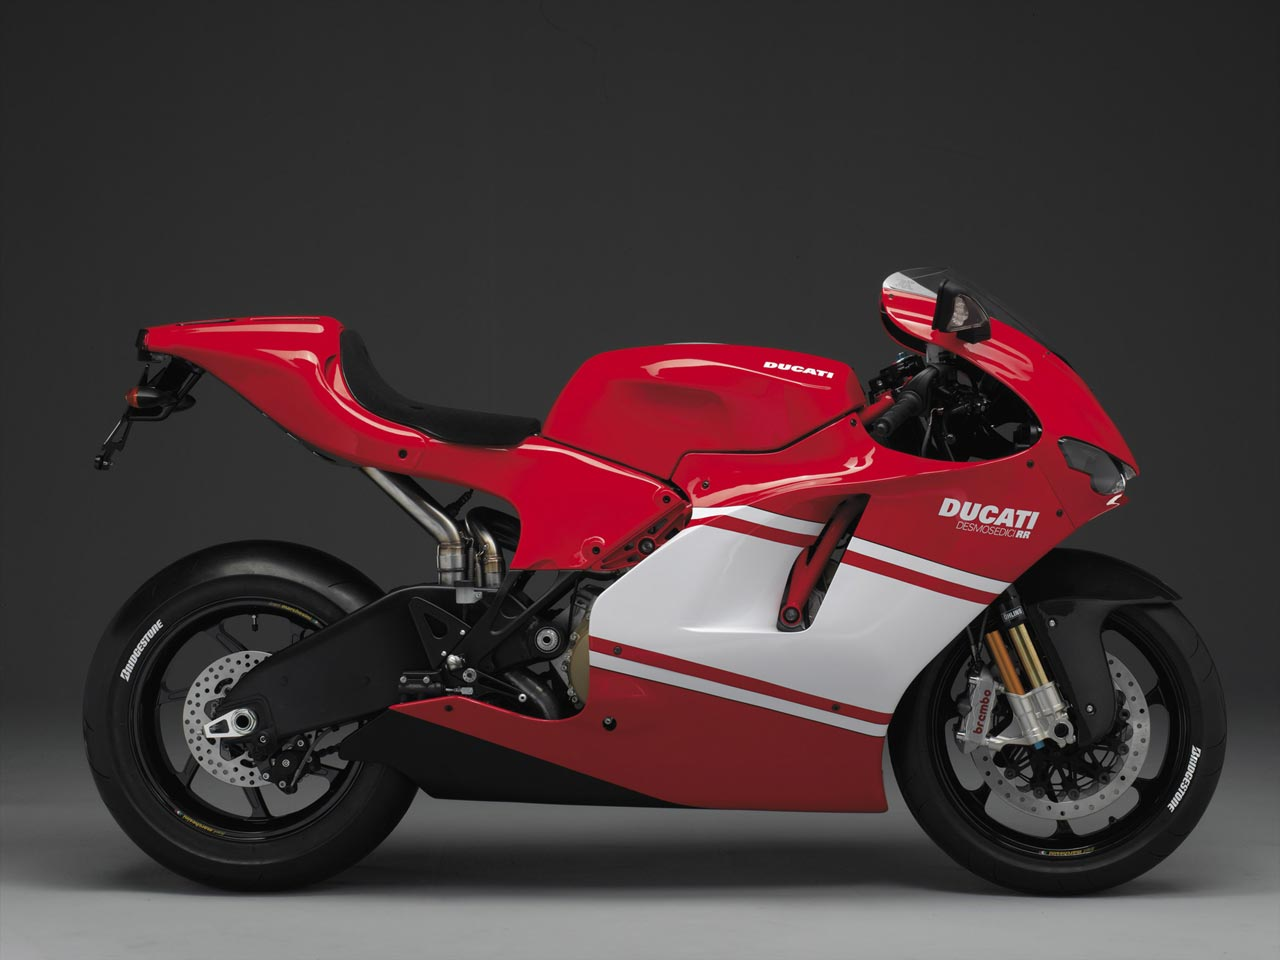 Ducati Desmosedici RR 2007 wallpapers #12013